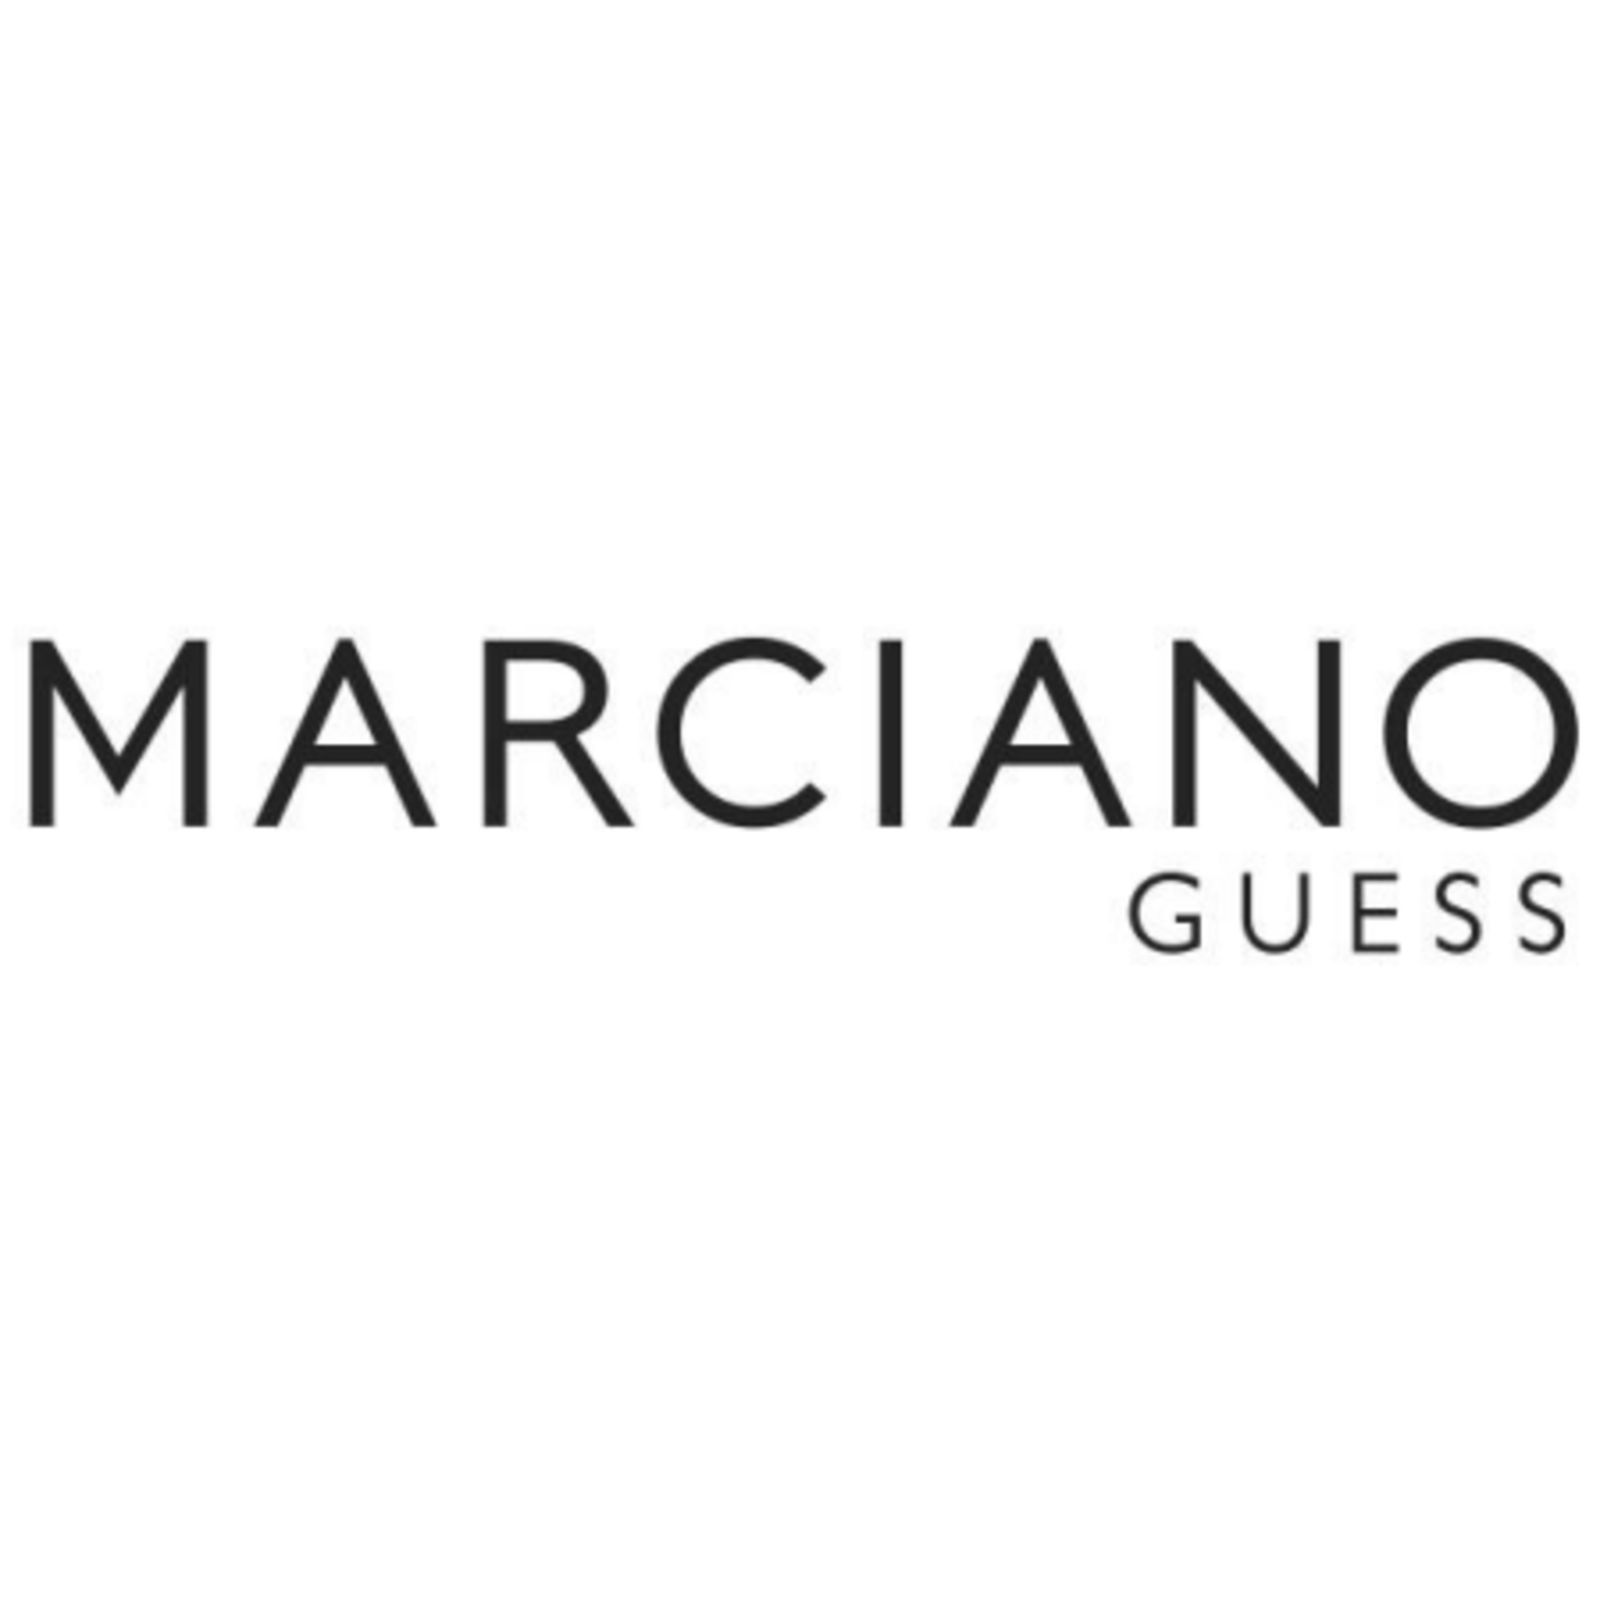 MARCIANO (Image 1)